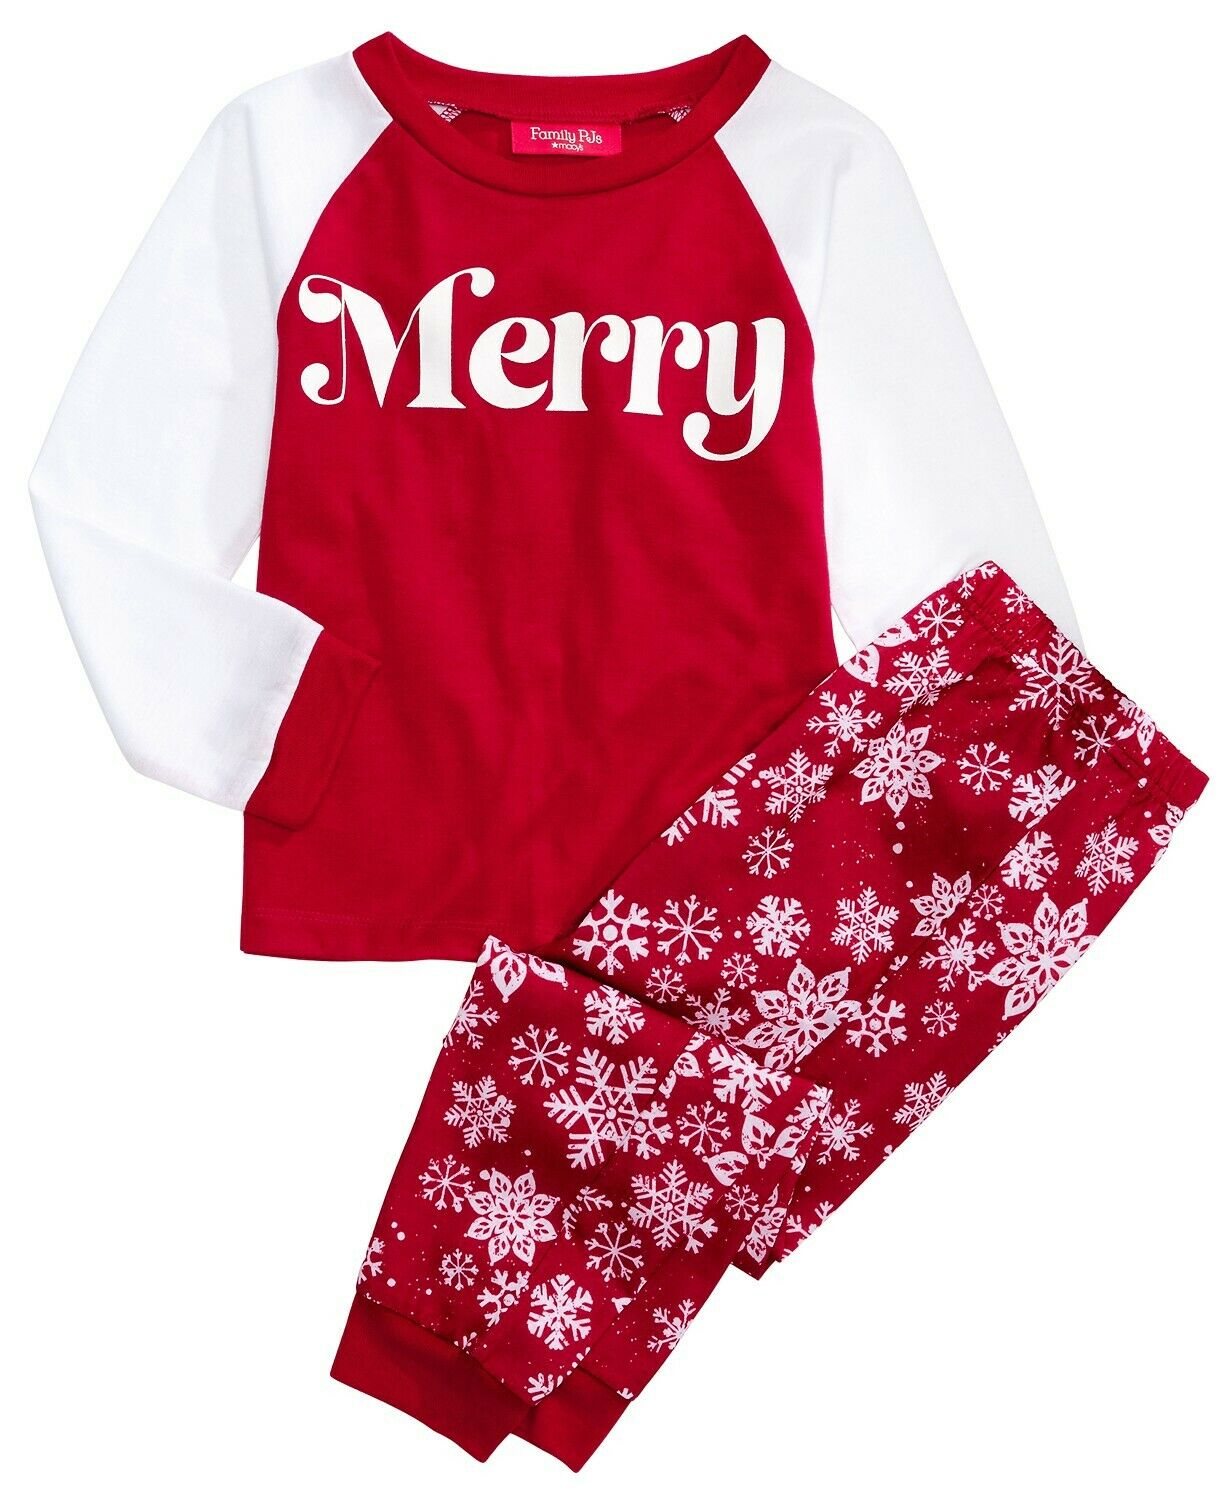 2Pcs Pajamas Set Christmas Children Kids Cartoon Santa Top XGao Christmas Pajamas Pants Xmas Family Clothes Outfit Boys Girls for 1 to 12 Years Old Best Gift Red, 11-12 Years